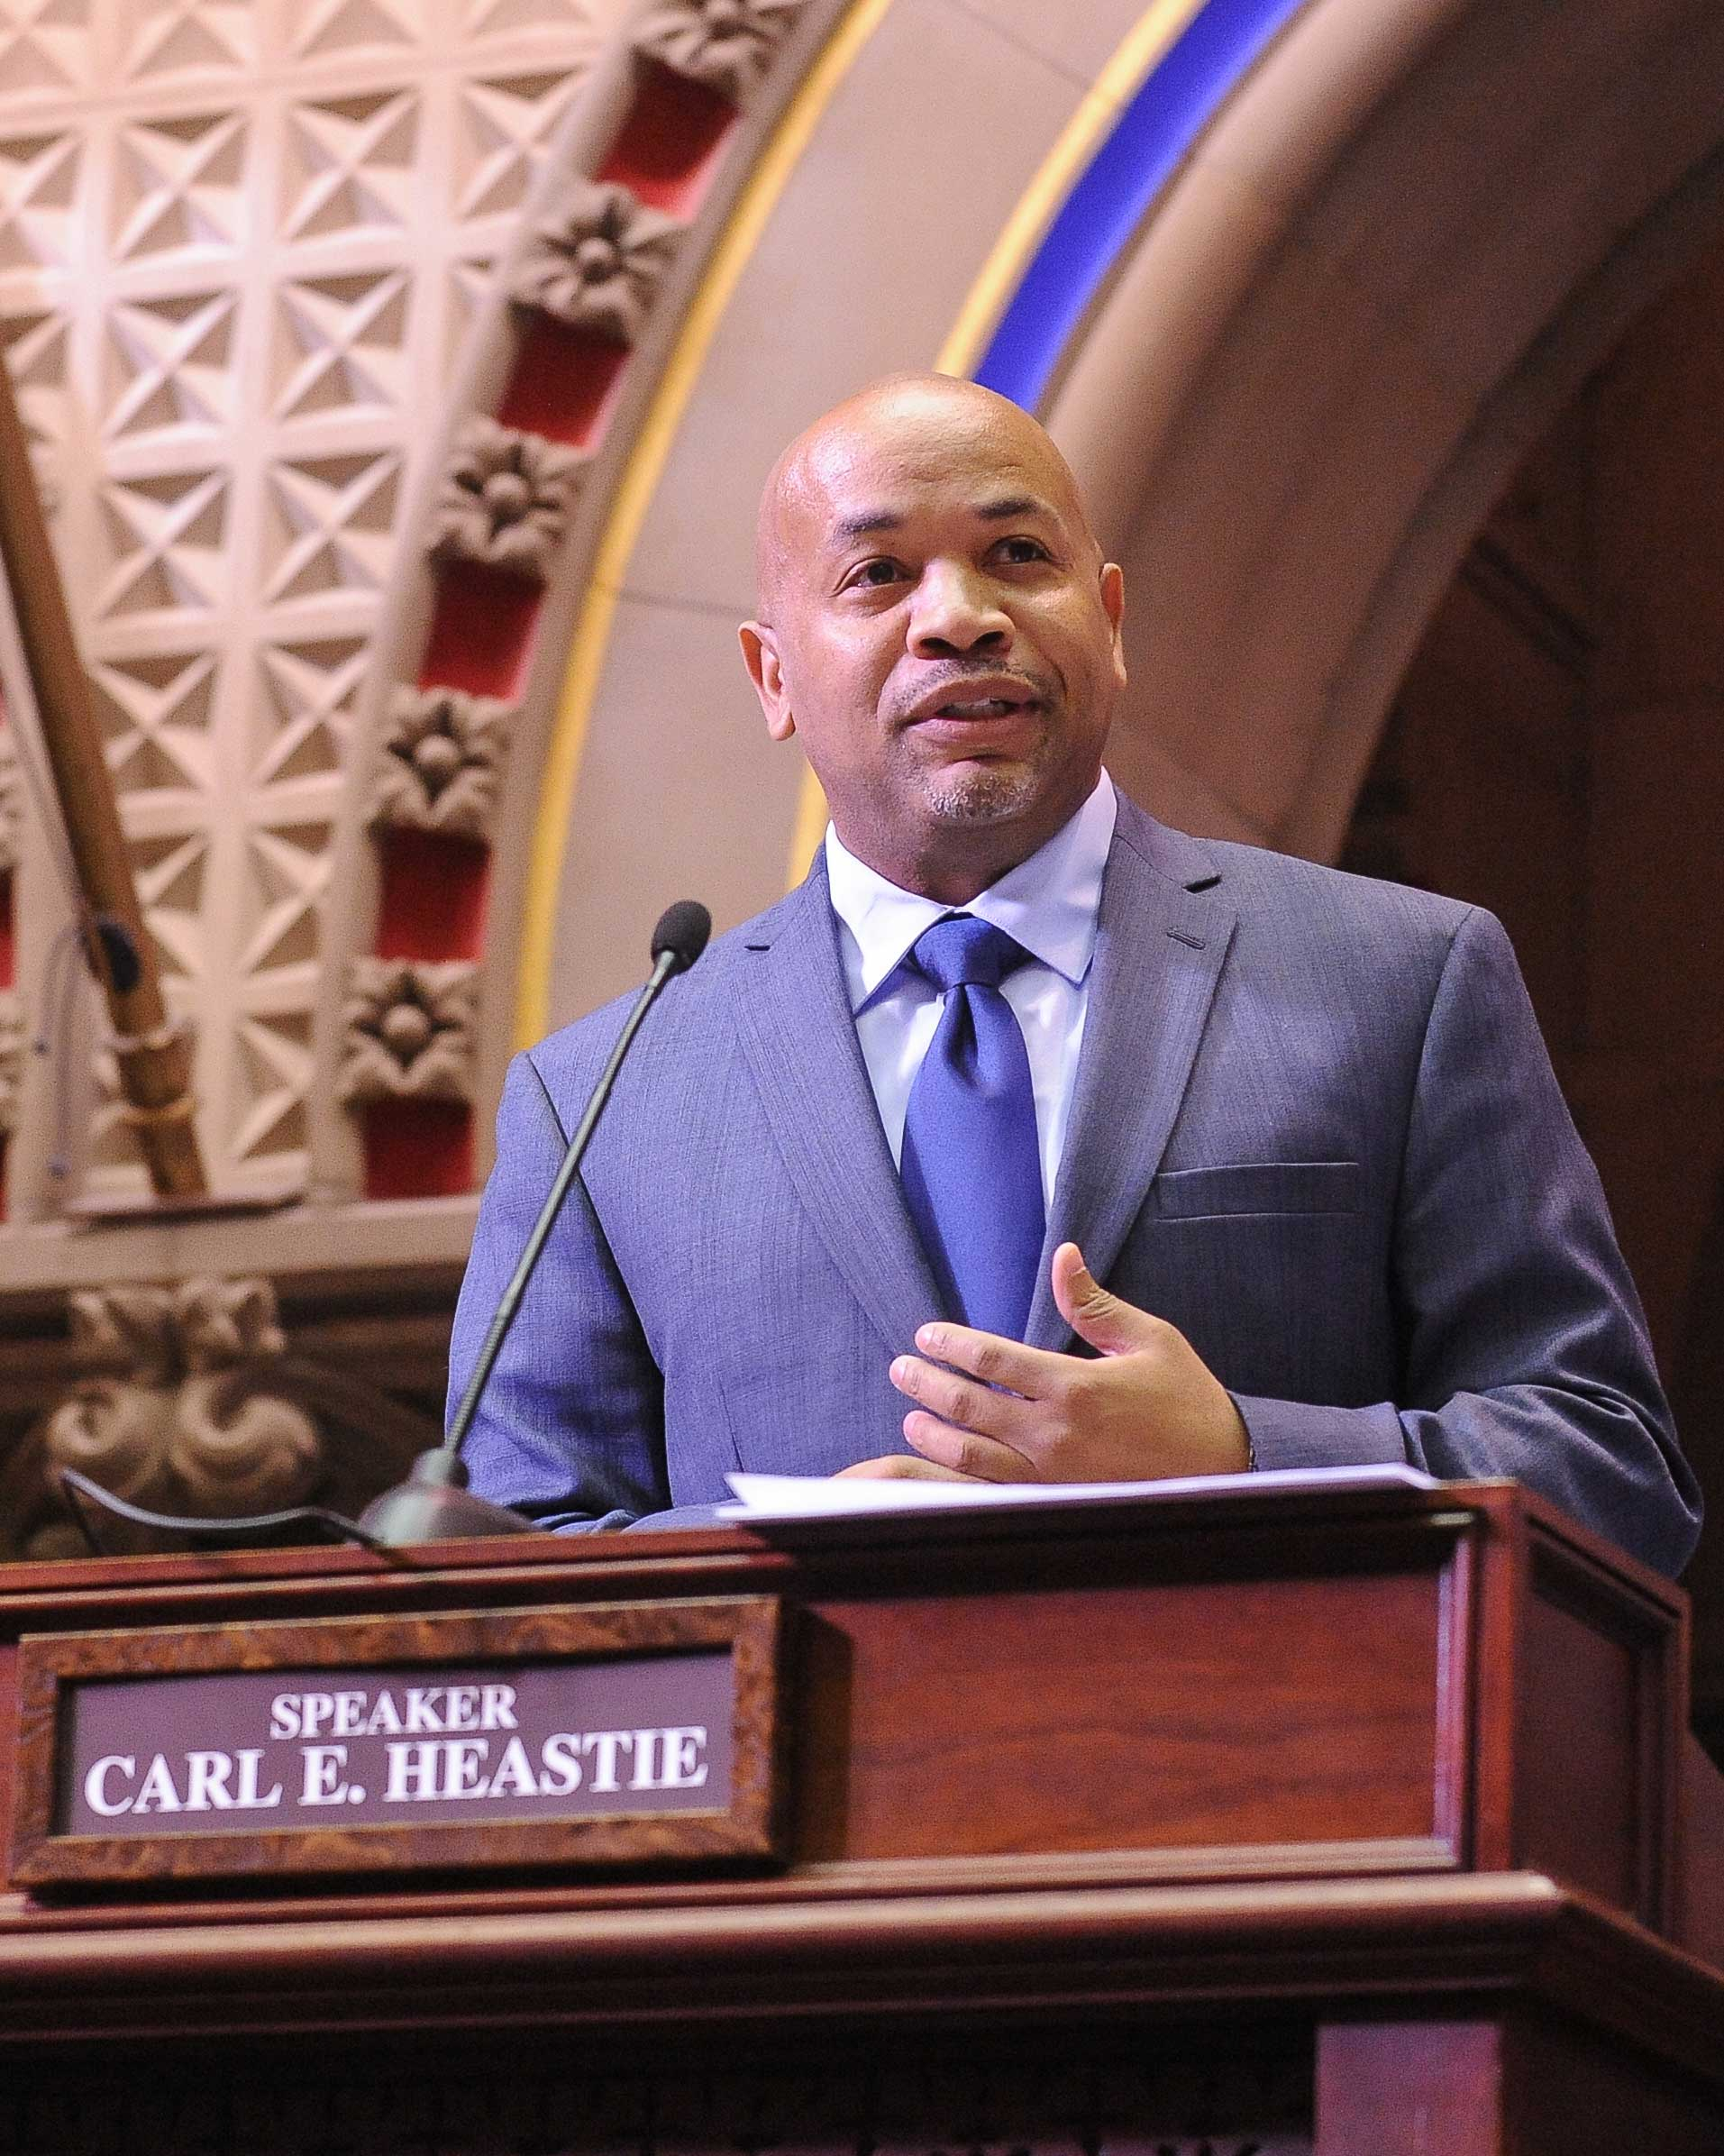 Carl E. Heastie Photo